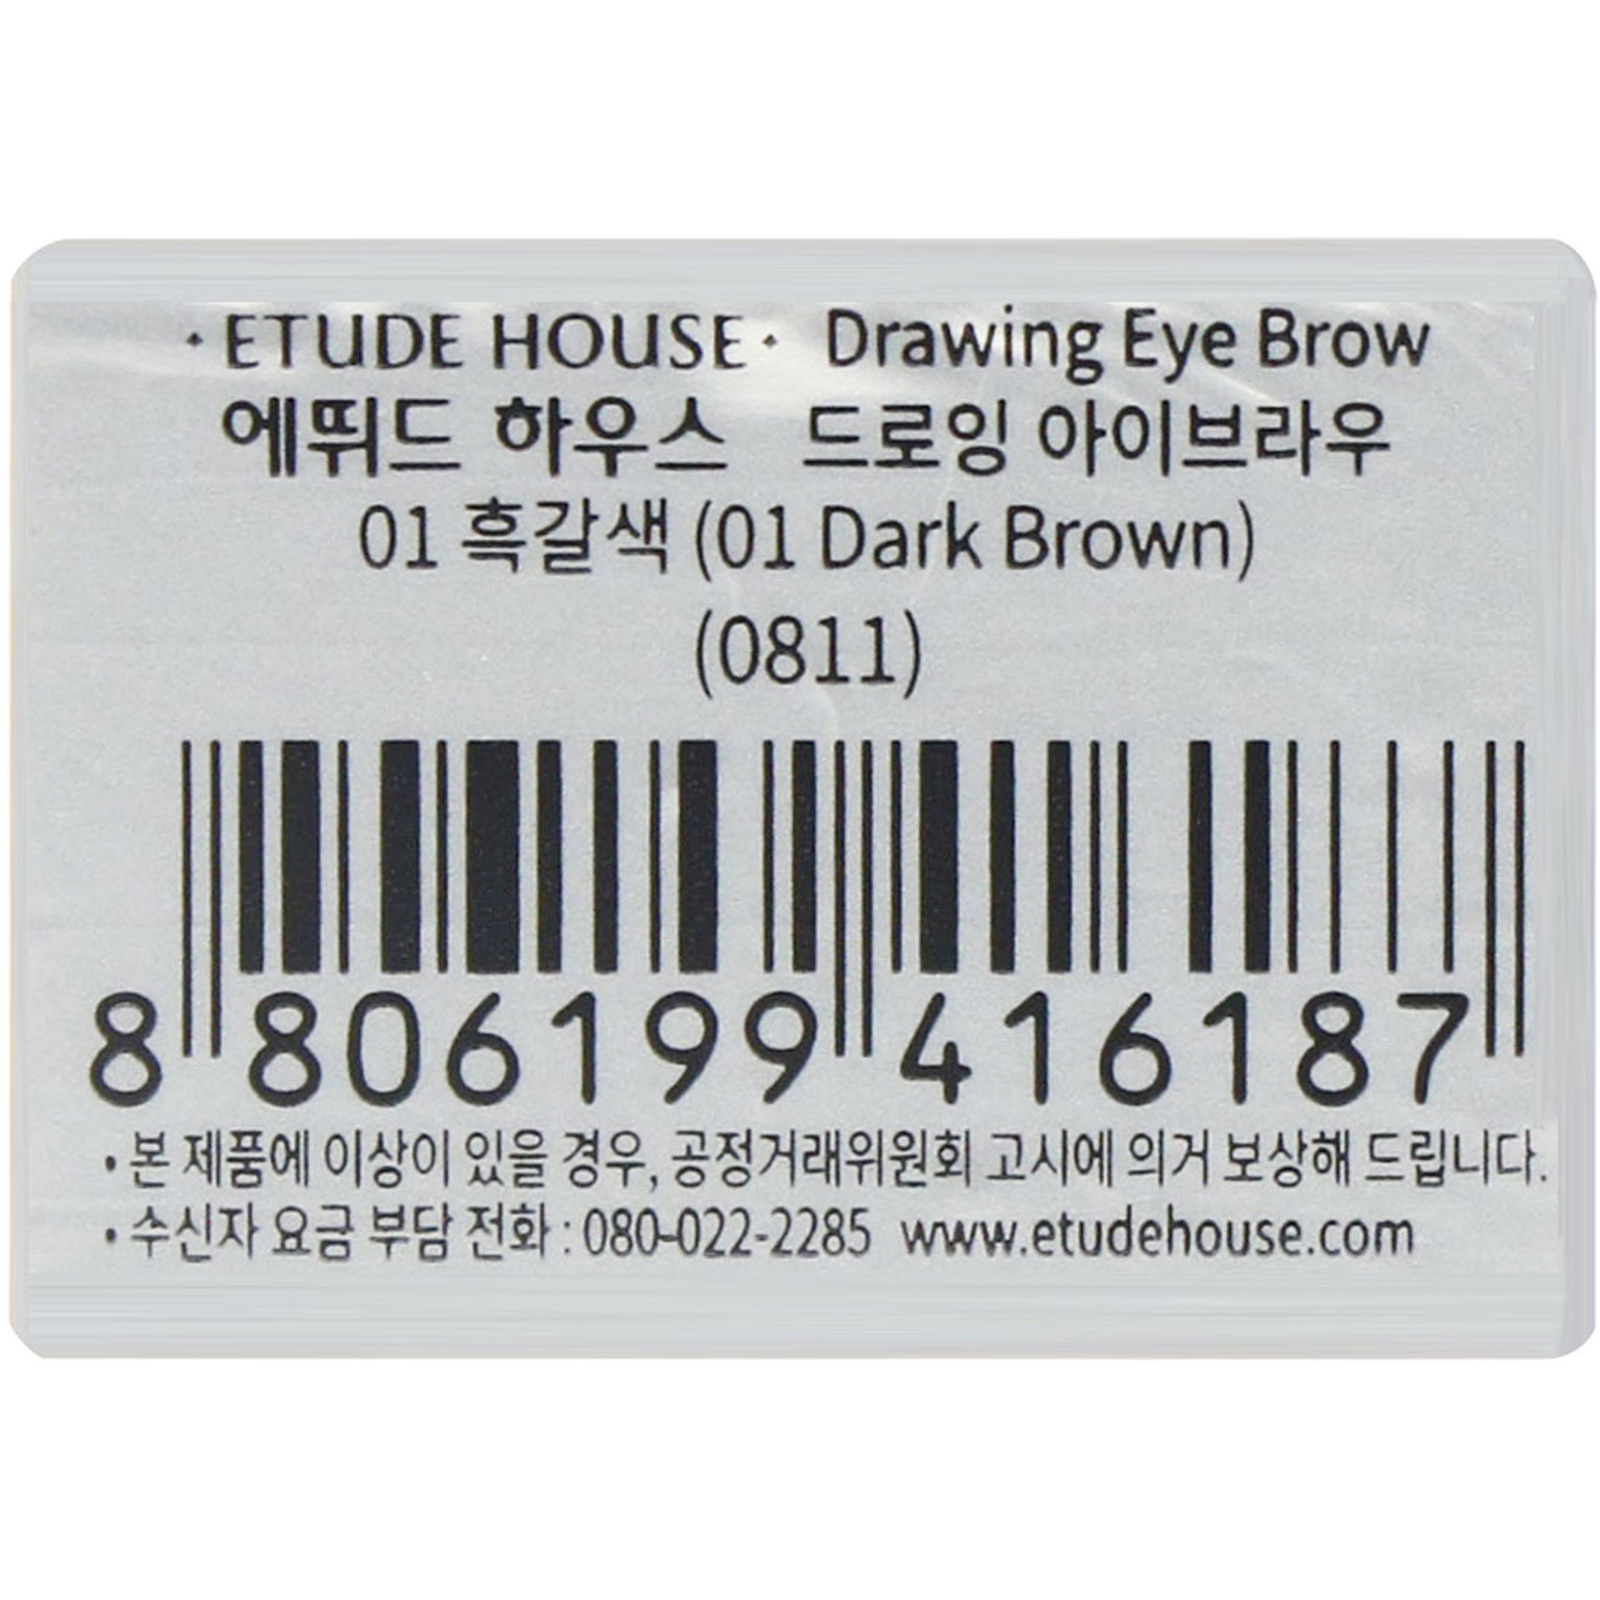 Etude House, Drawing Eye Brow, Dark Brown #01, 1 Pencil. By Etude House